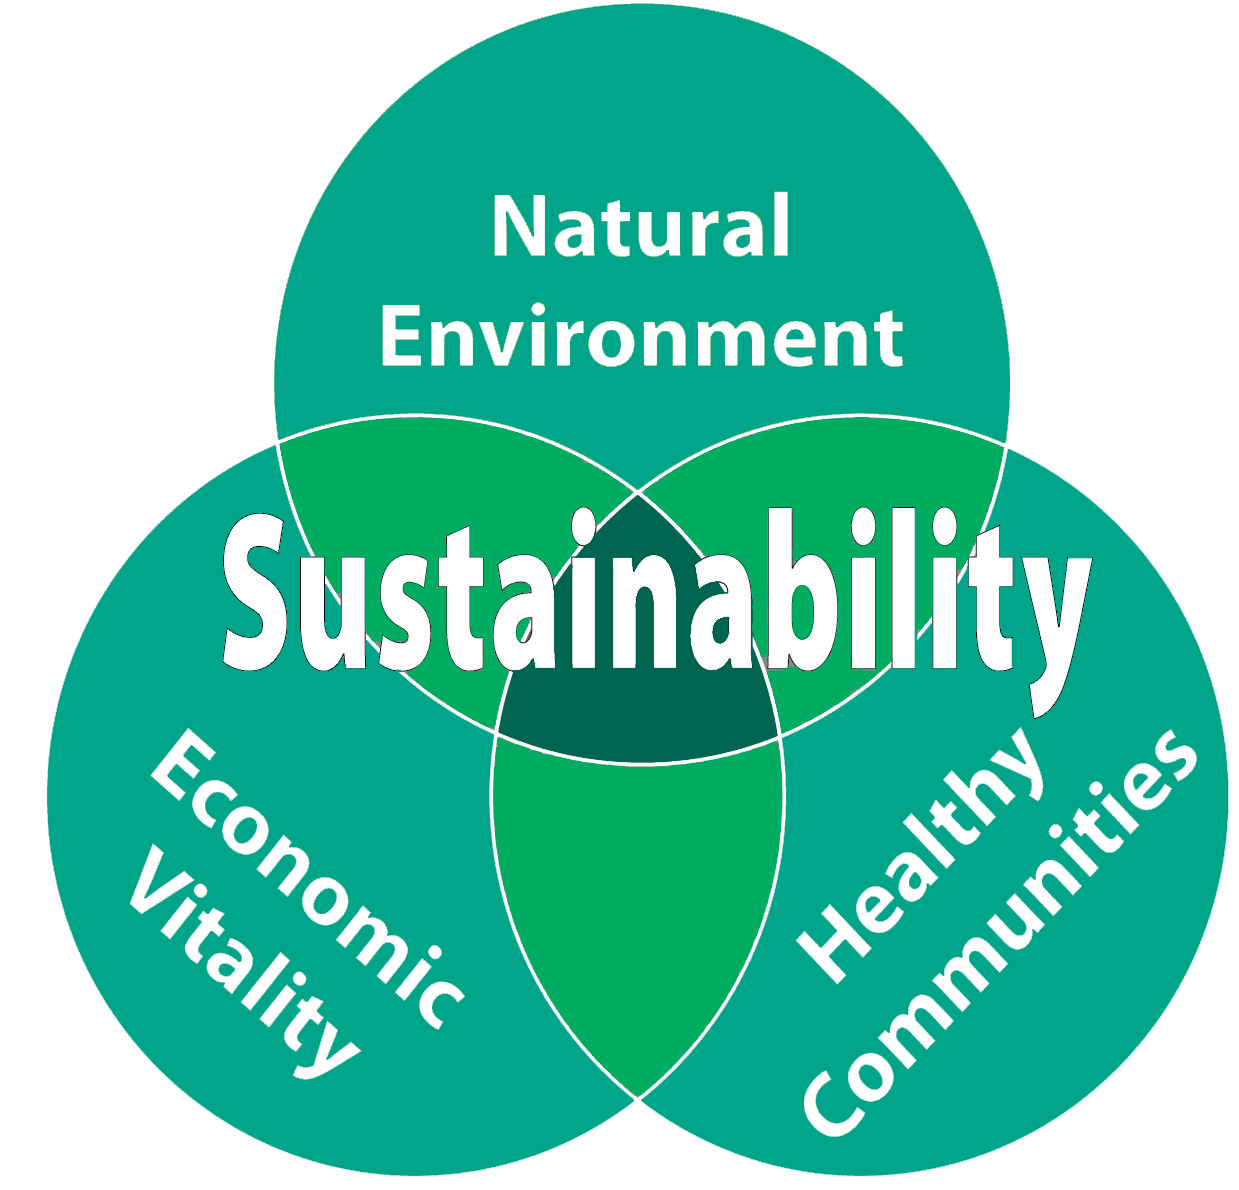 thesis on environmental economics Environmental economics concentration adviser: lynne lewis methods in the environmental economics include applied statistics quantitative skills will be learned in all courses and students will learn about data analysis and policy analysis.